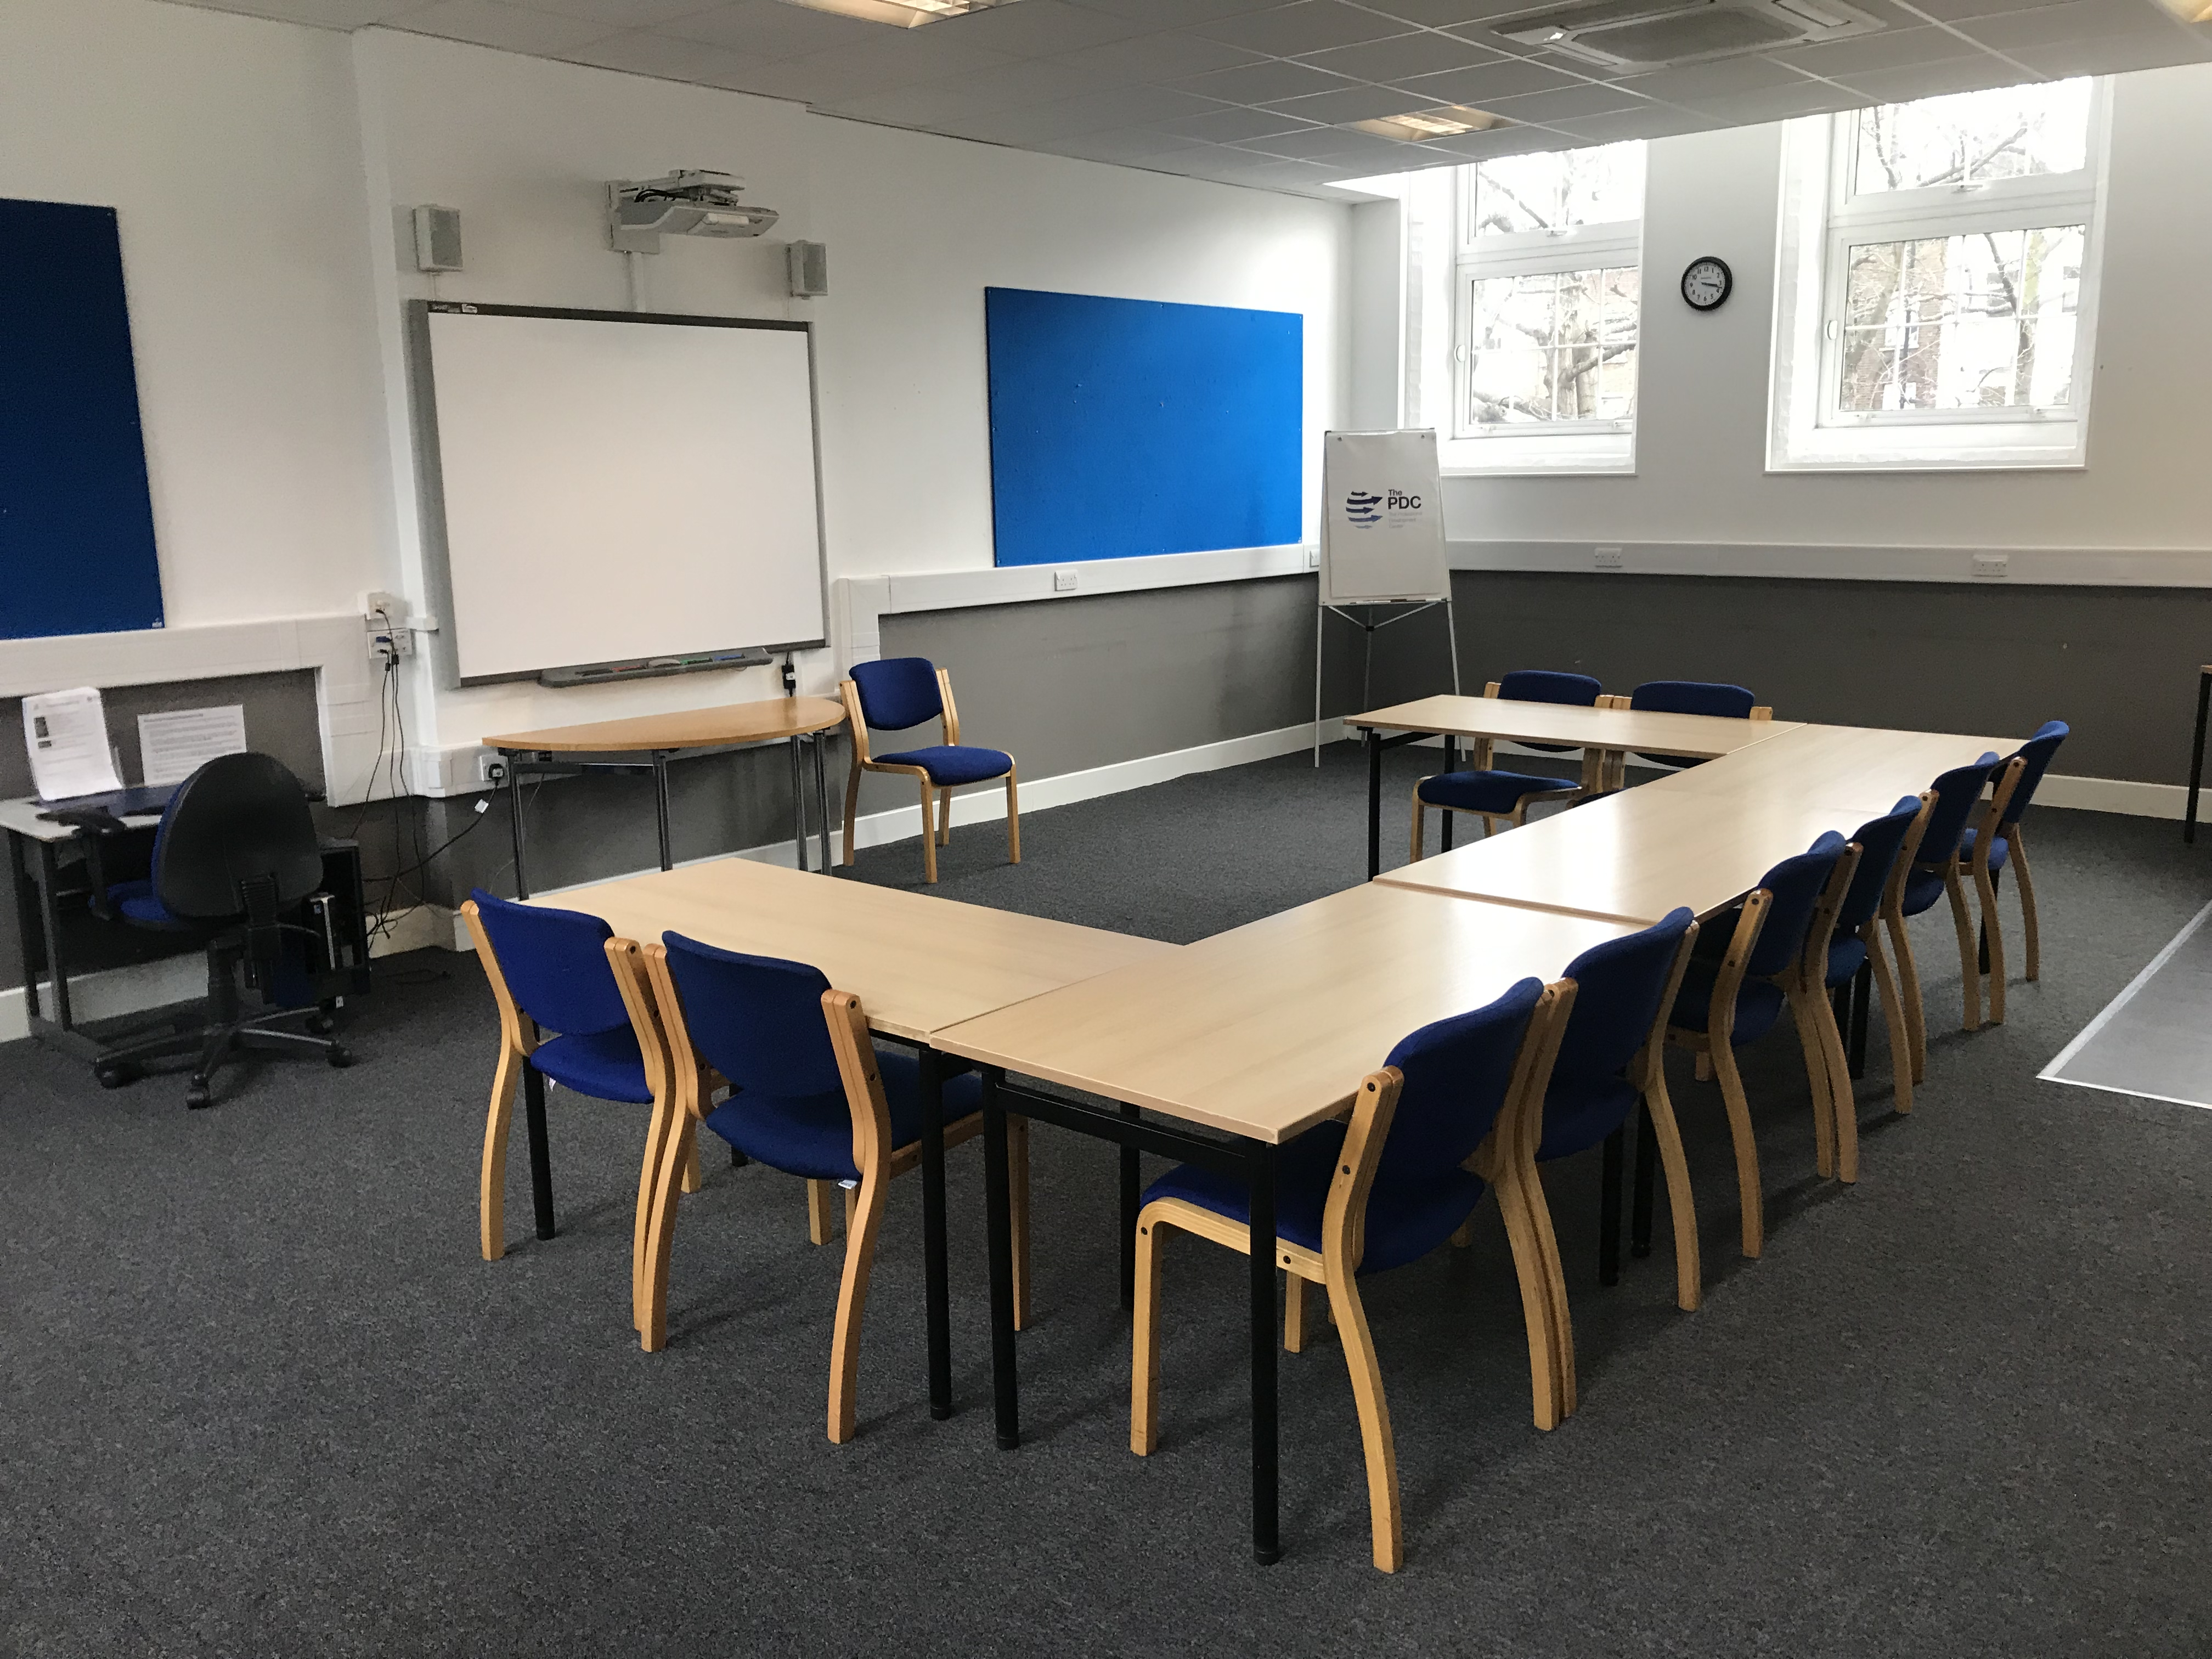 room 107 - ushape tables and chairs